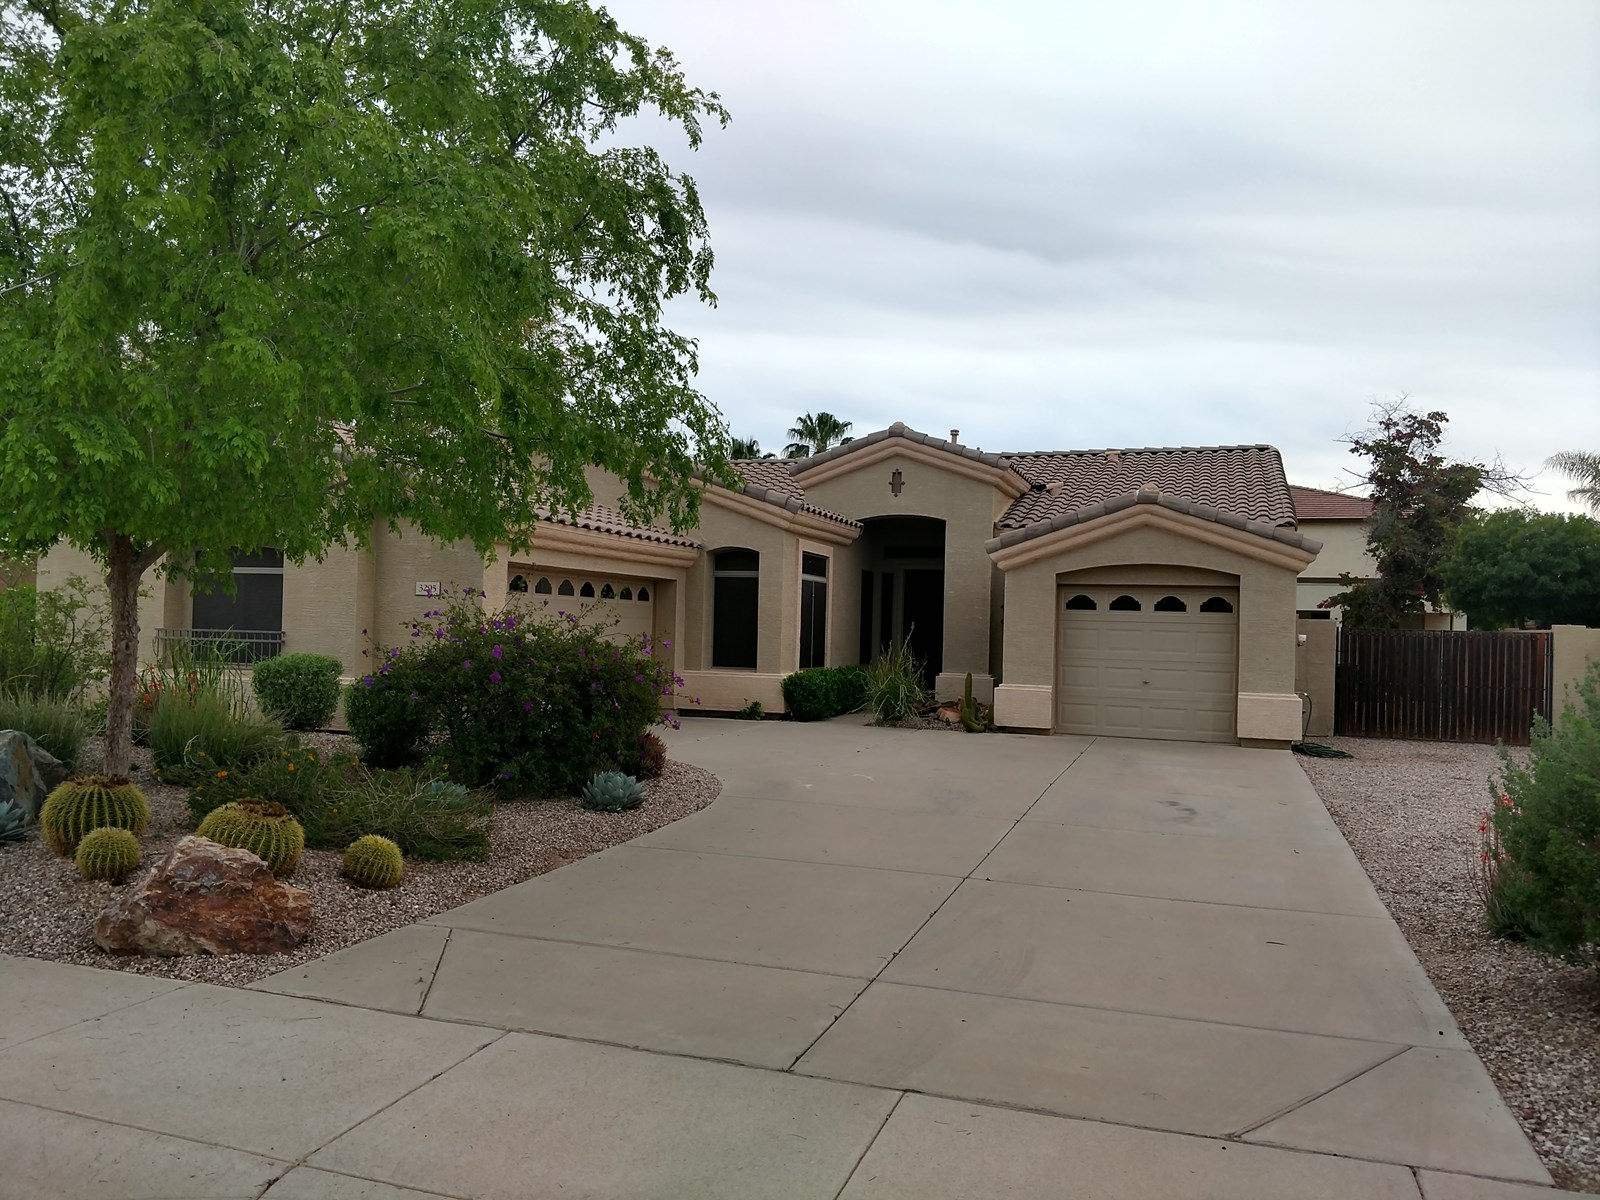 3 BEDROOM GILBERT AZ HOUSE NEAR SAN TAN MALL